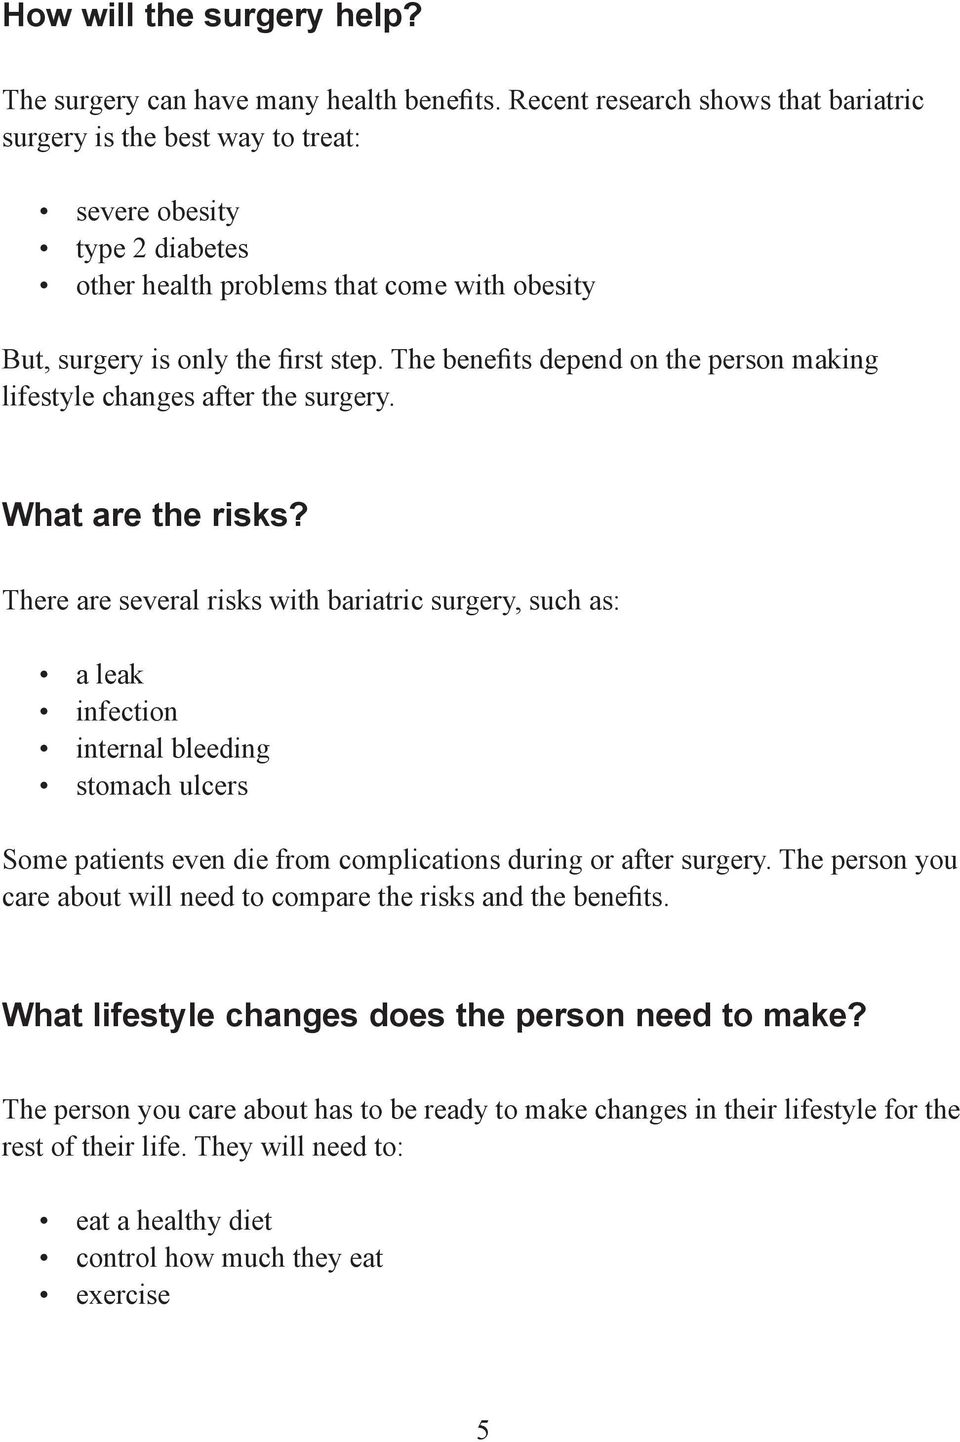 The benefits depend on the person making lifestyle changes after the surgery. What are the risks?